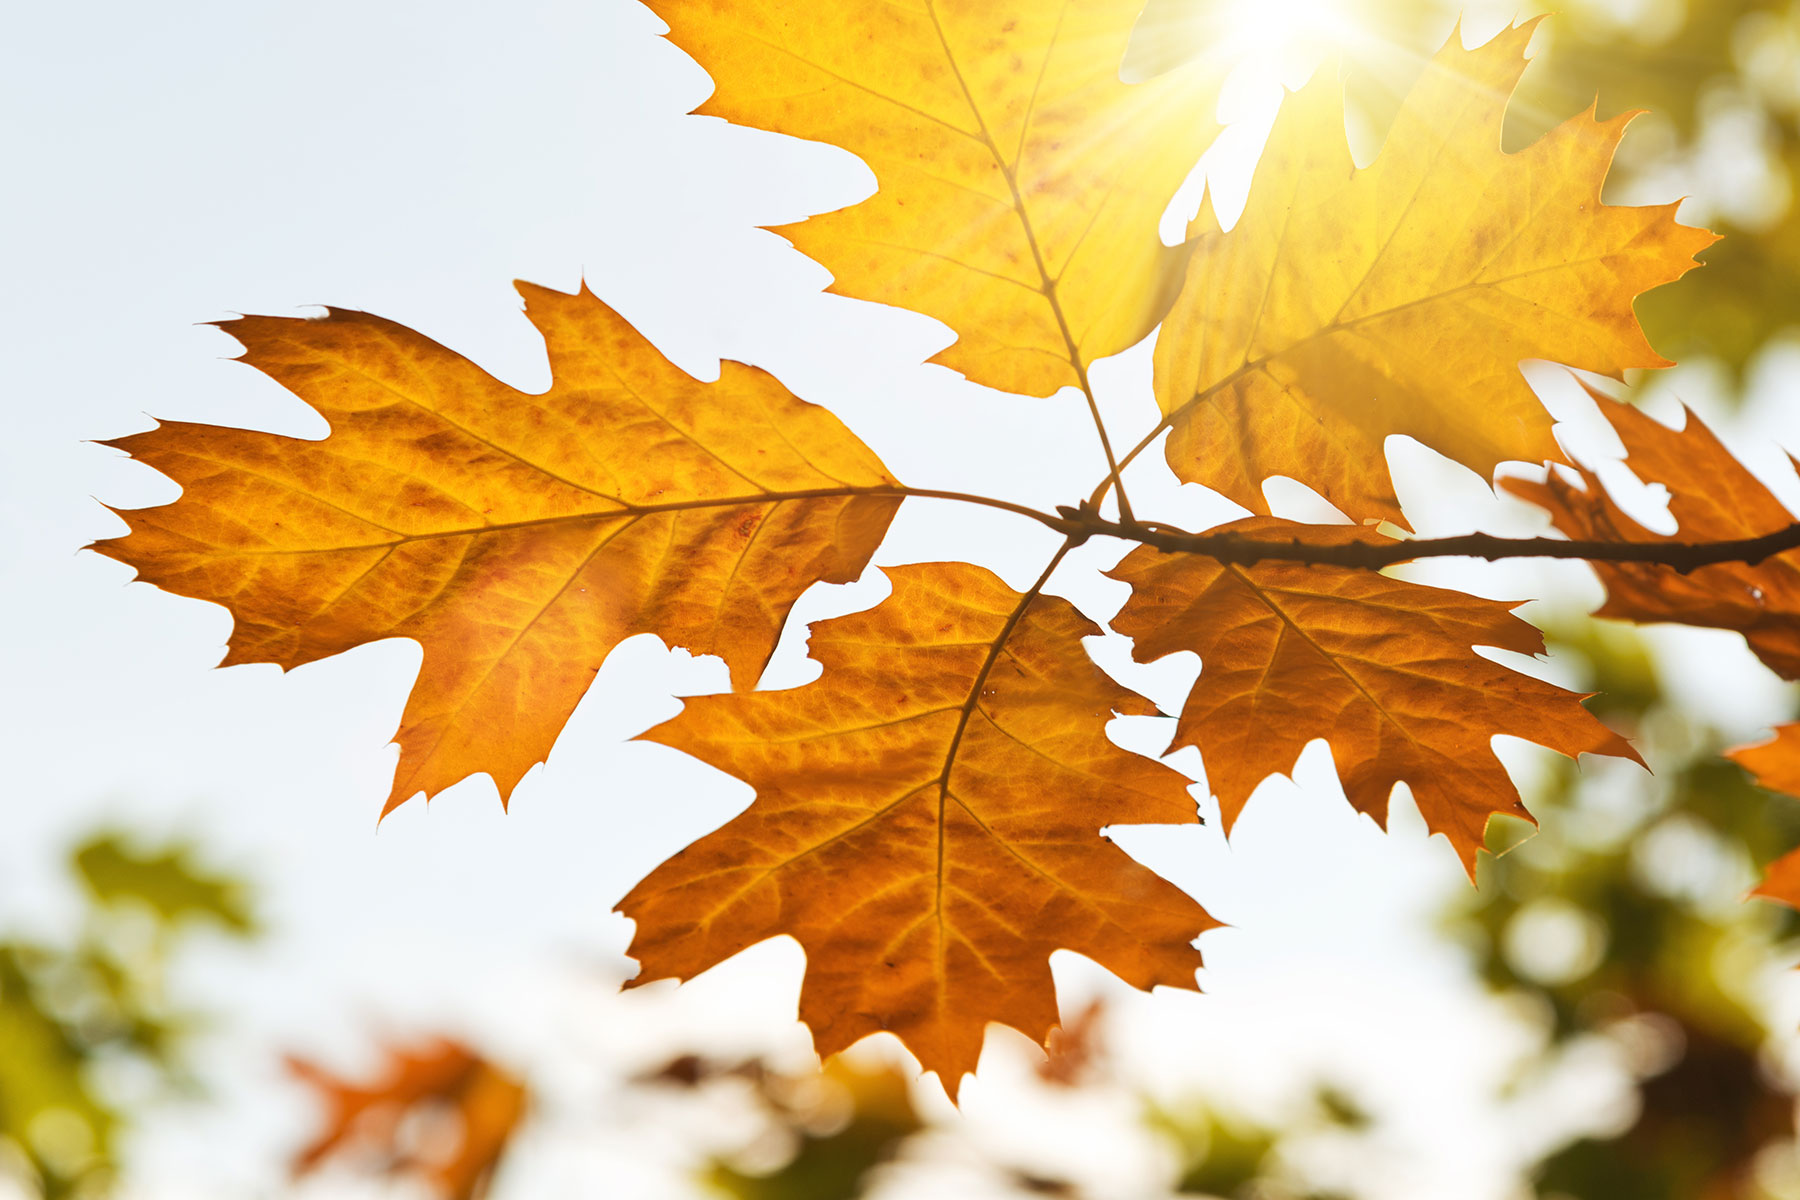 autumn-leaves-in-the-sun-of-light